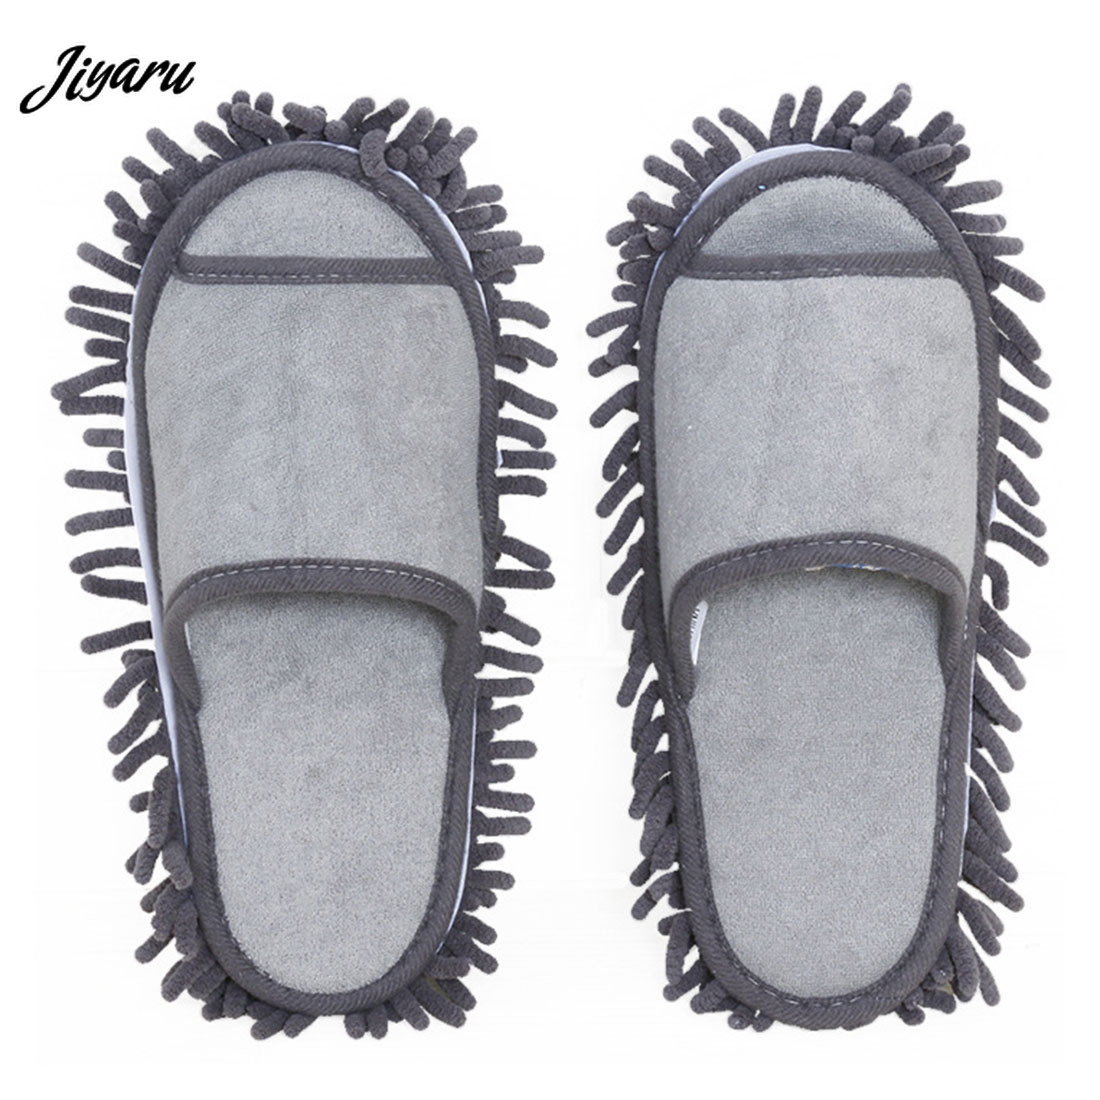 New Floor Cleaning Slippers Soft Home